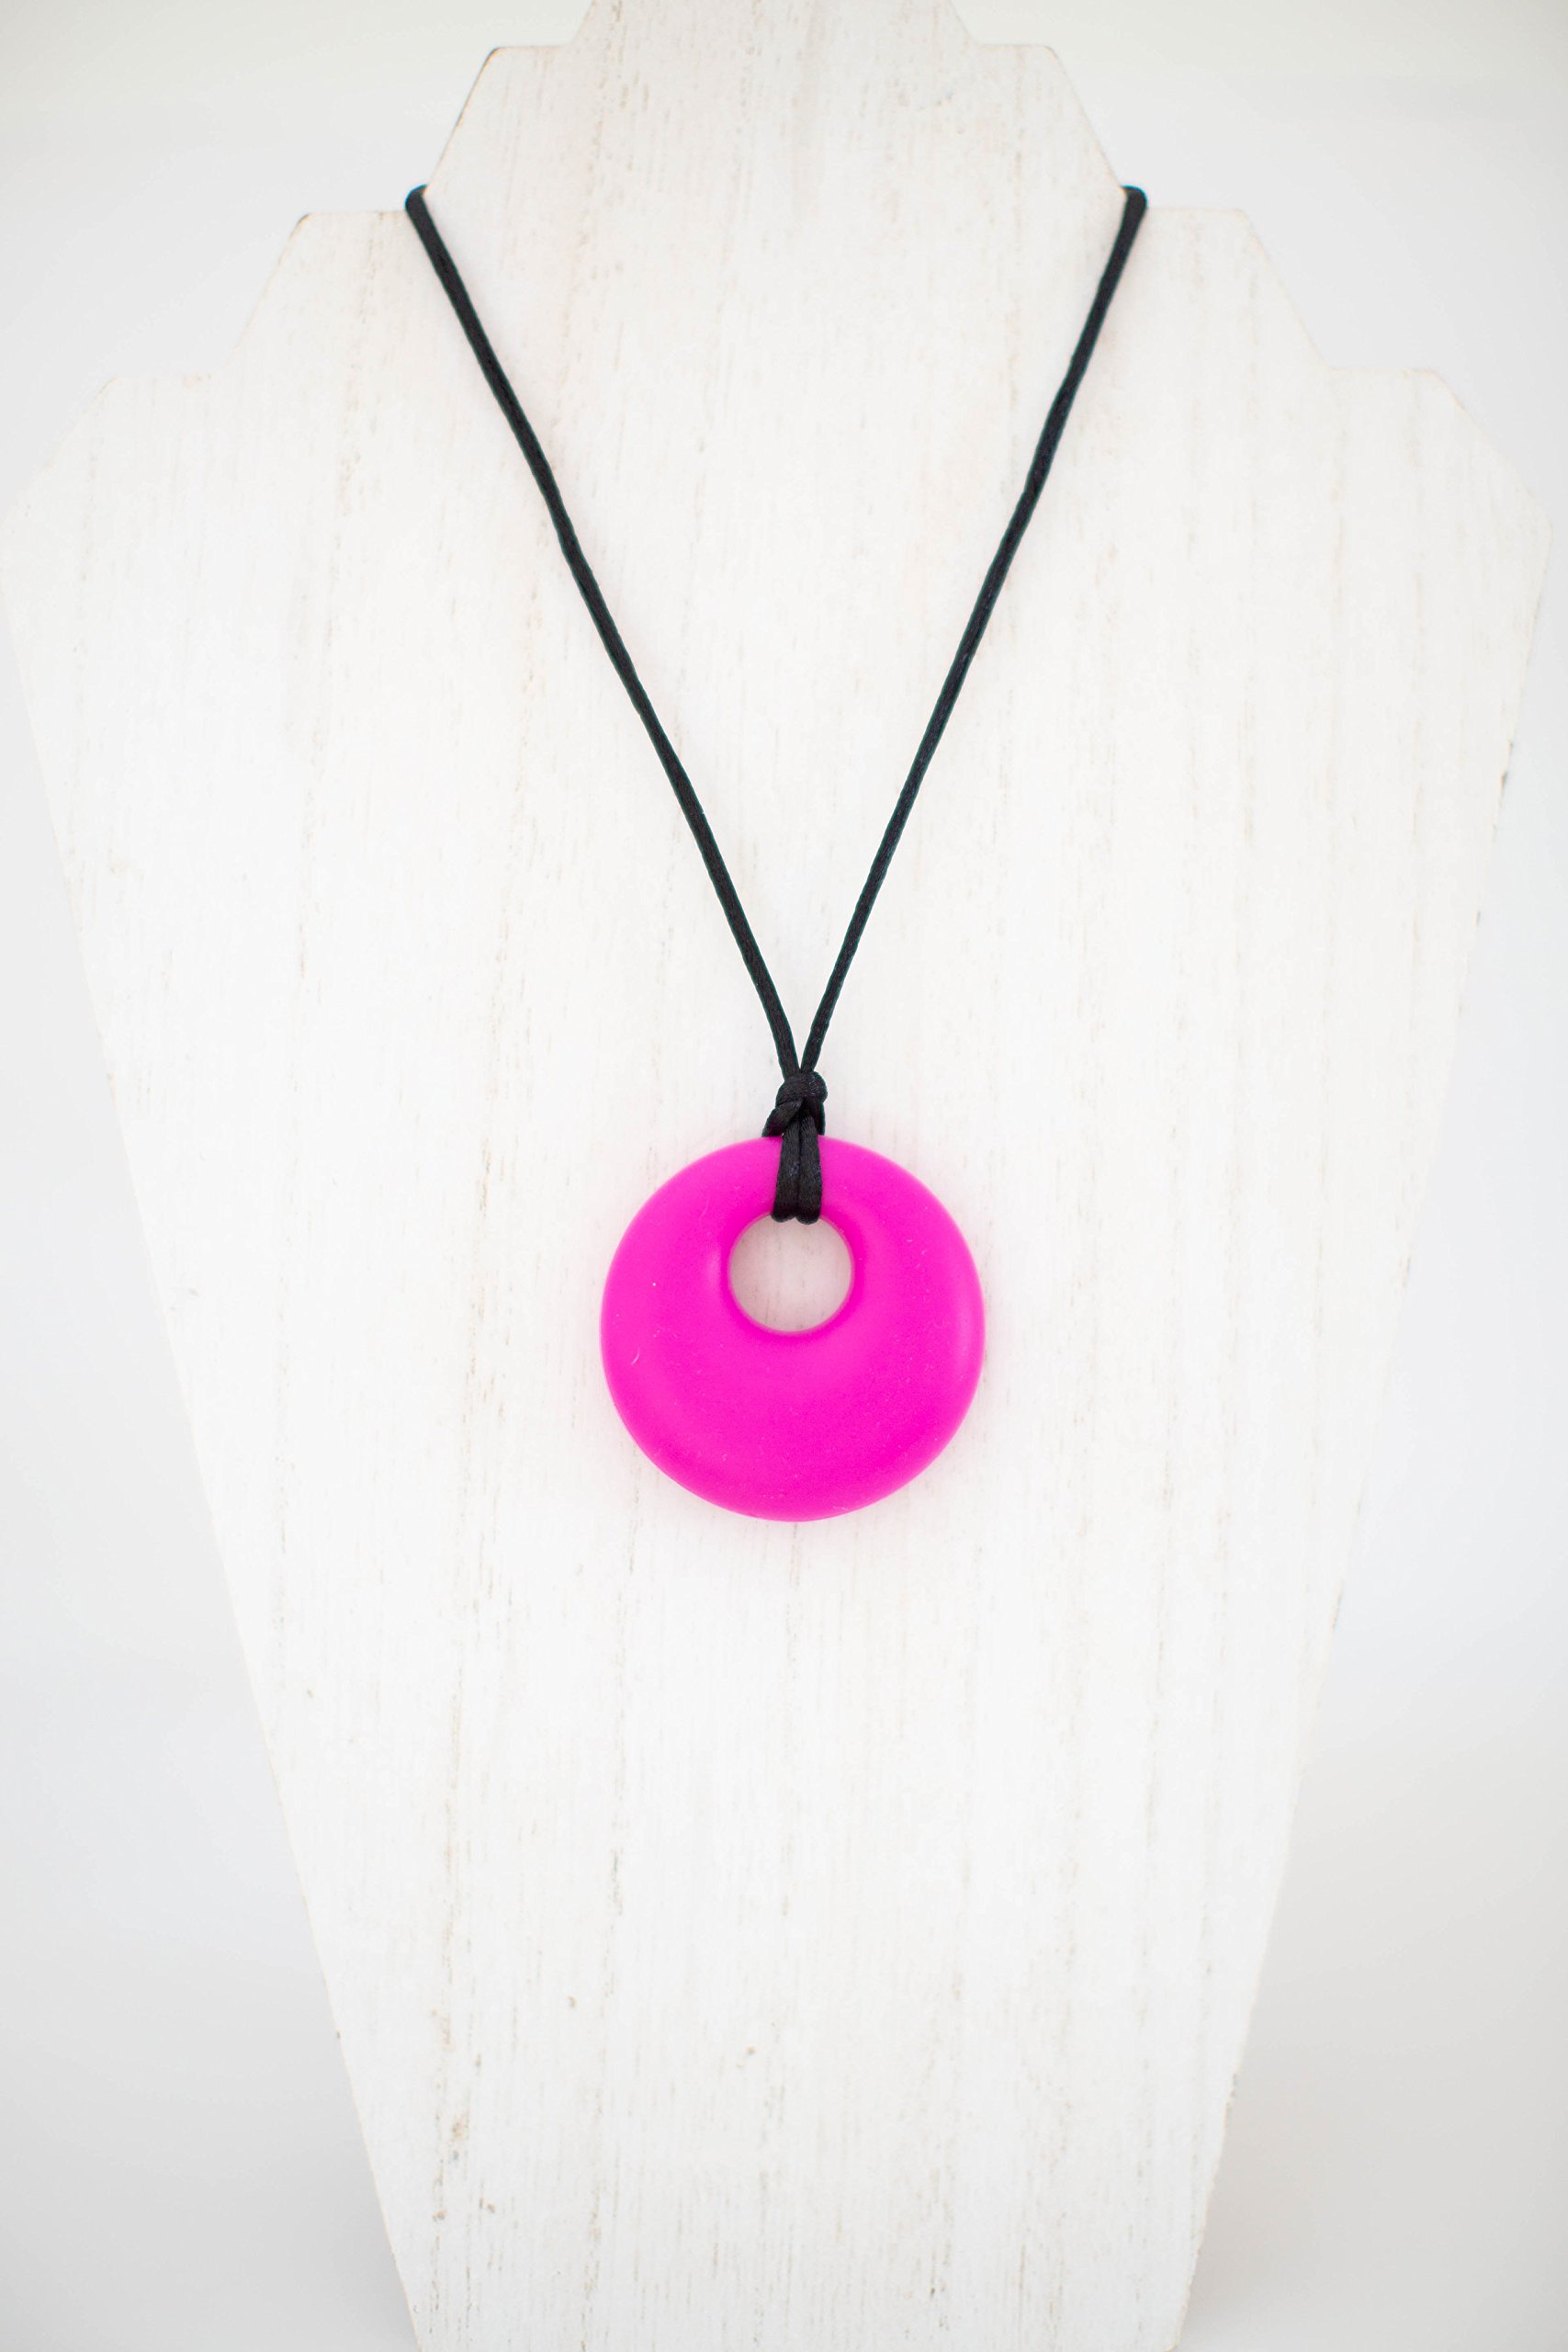 Chewby Chewelry Big Chew Pendant (Fuschia) Silicone Oral Sensory aid Necklace for Boys and Girls